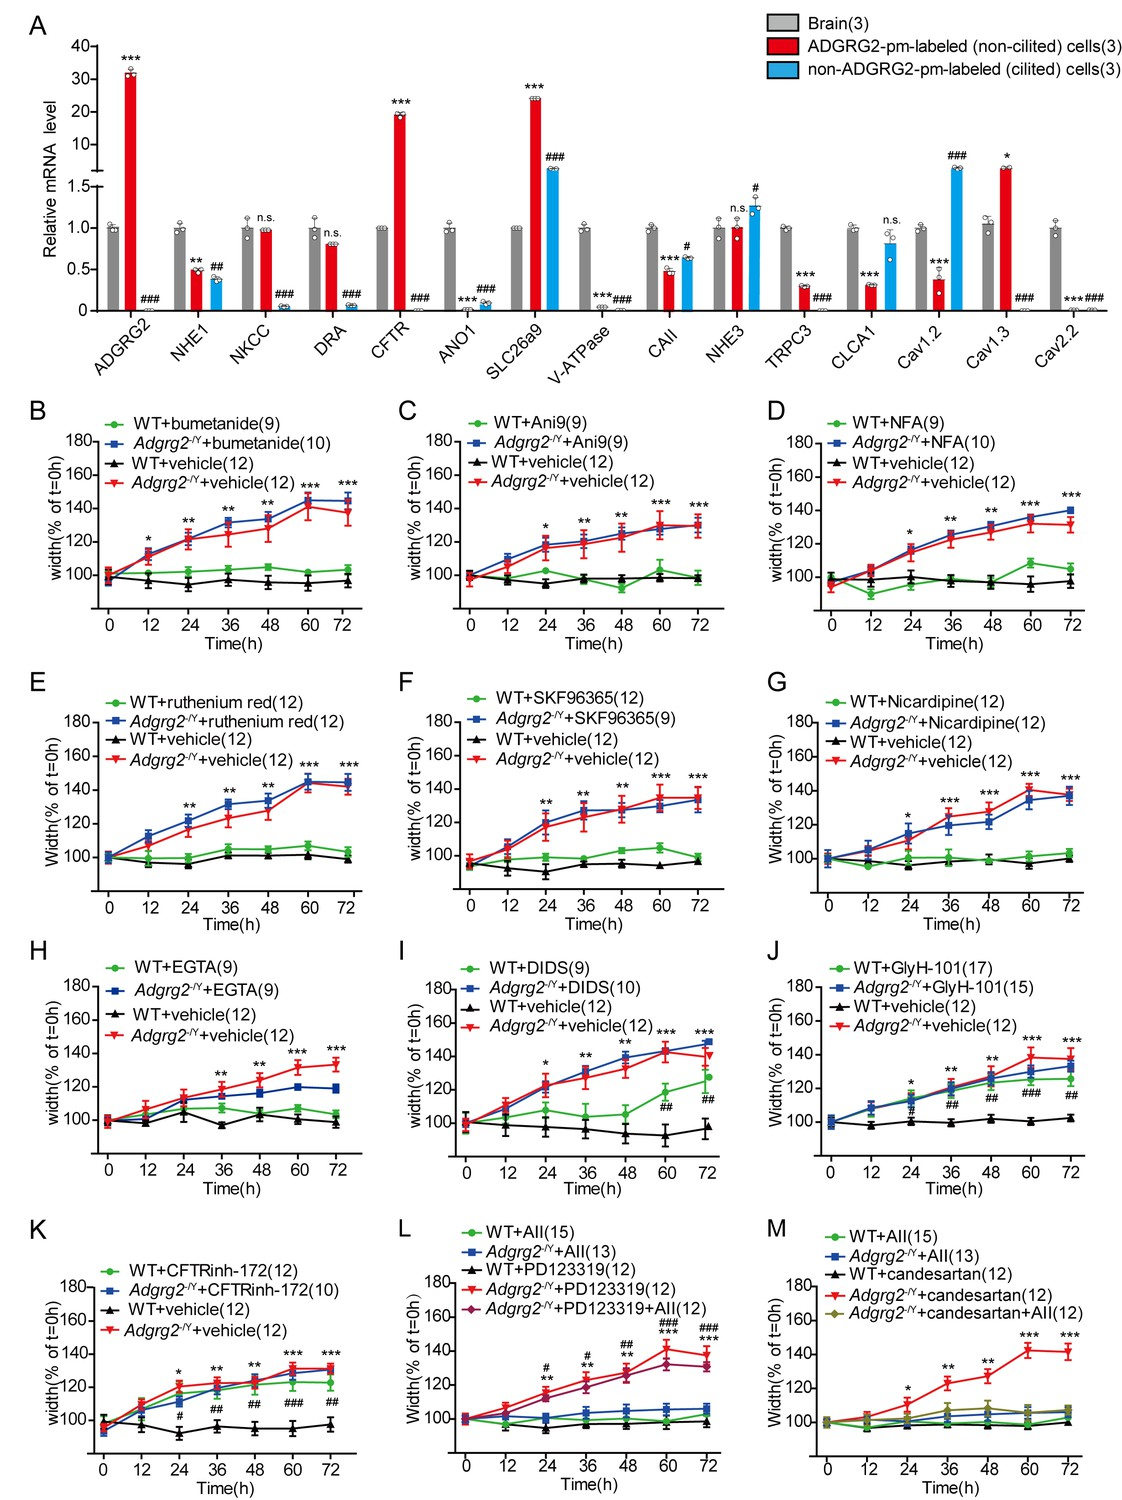 Gq Activity And Arrestin 1 Scaffolding Mediated Adgrg2 Cftr Ji Zhi Tang Jiang Inhibition Of In The Efferent Ductules Pheno Copied Y Mice